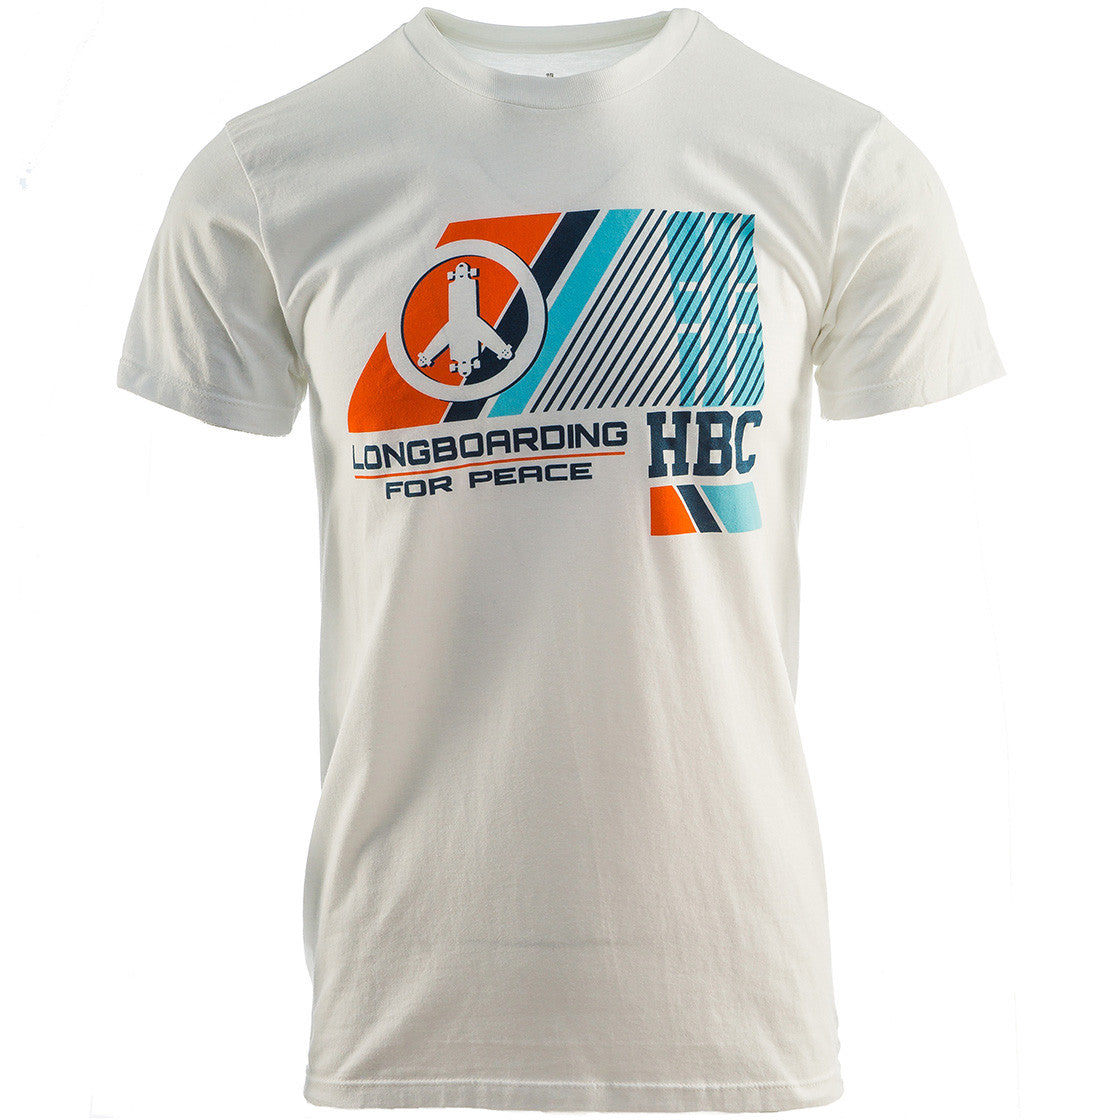 cd04ee7d0 HBC Longboarding For Peace Modern White T-Shirt – Hashtag Board Co.